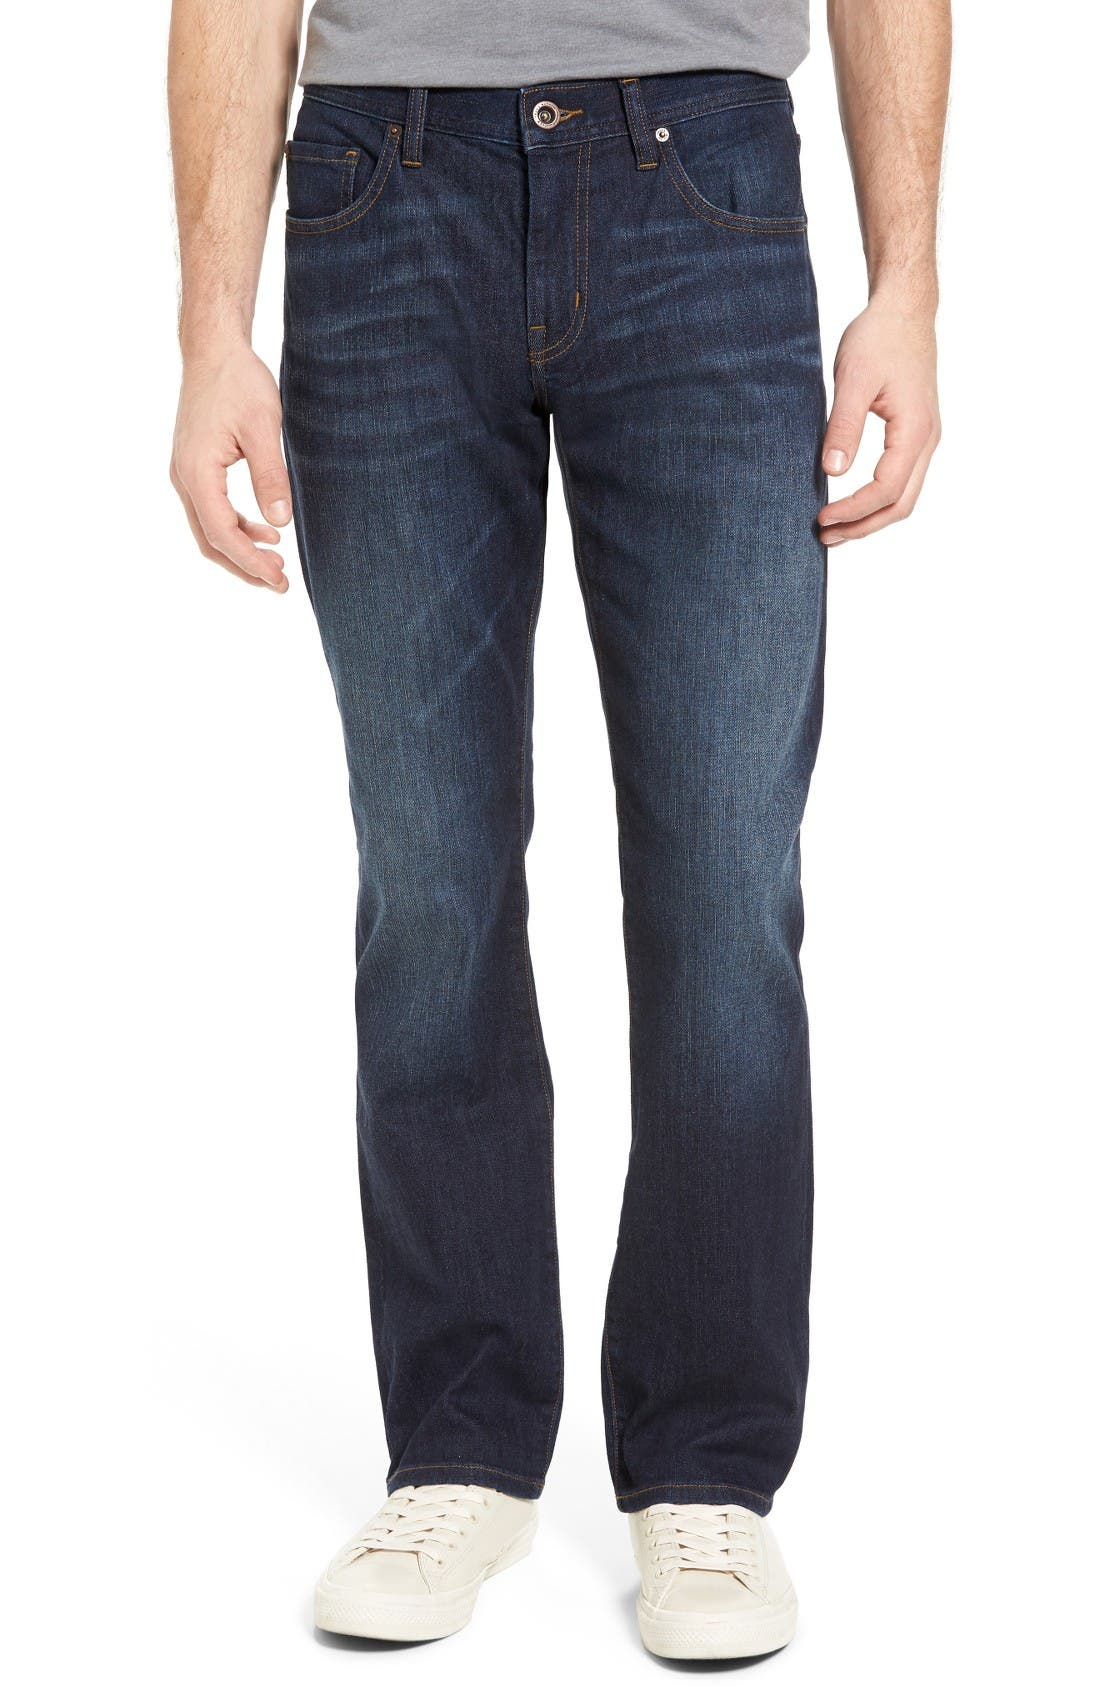 Alternate Image 1 Selected - Travis Mathew 'Duke' Relaxed Fit Jeans (Vintage Indigo)